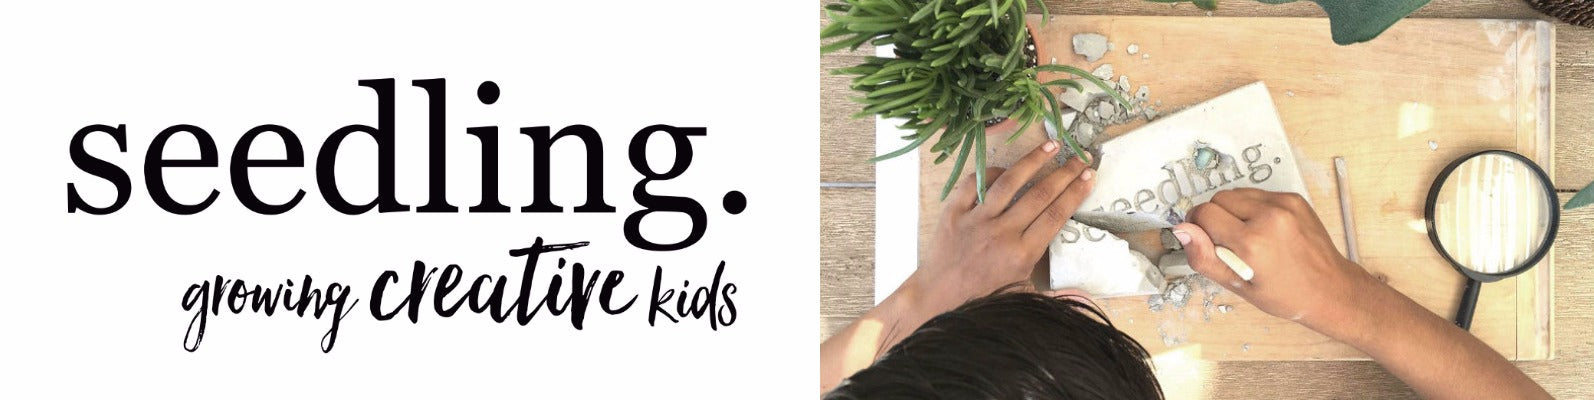 Seedling: Growing Creative Kids